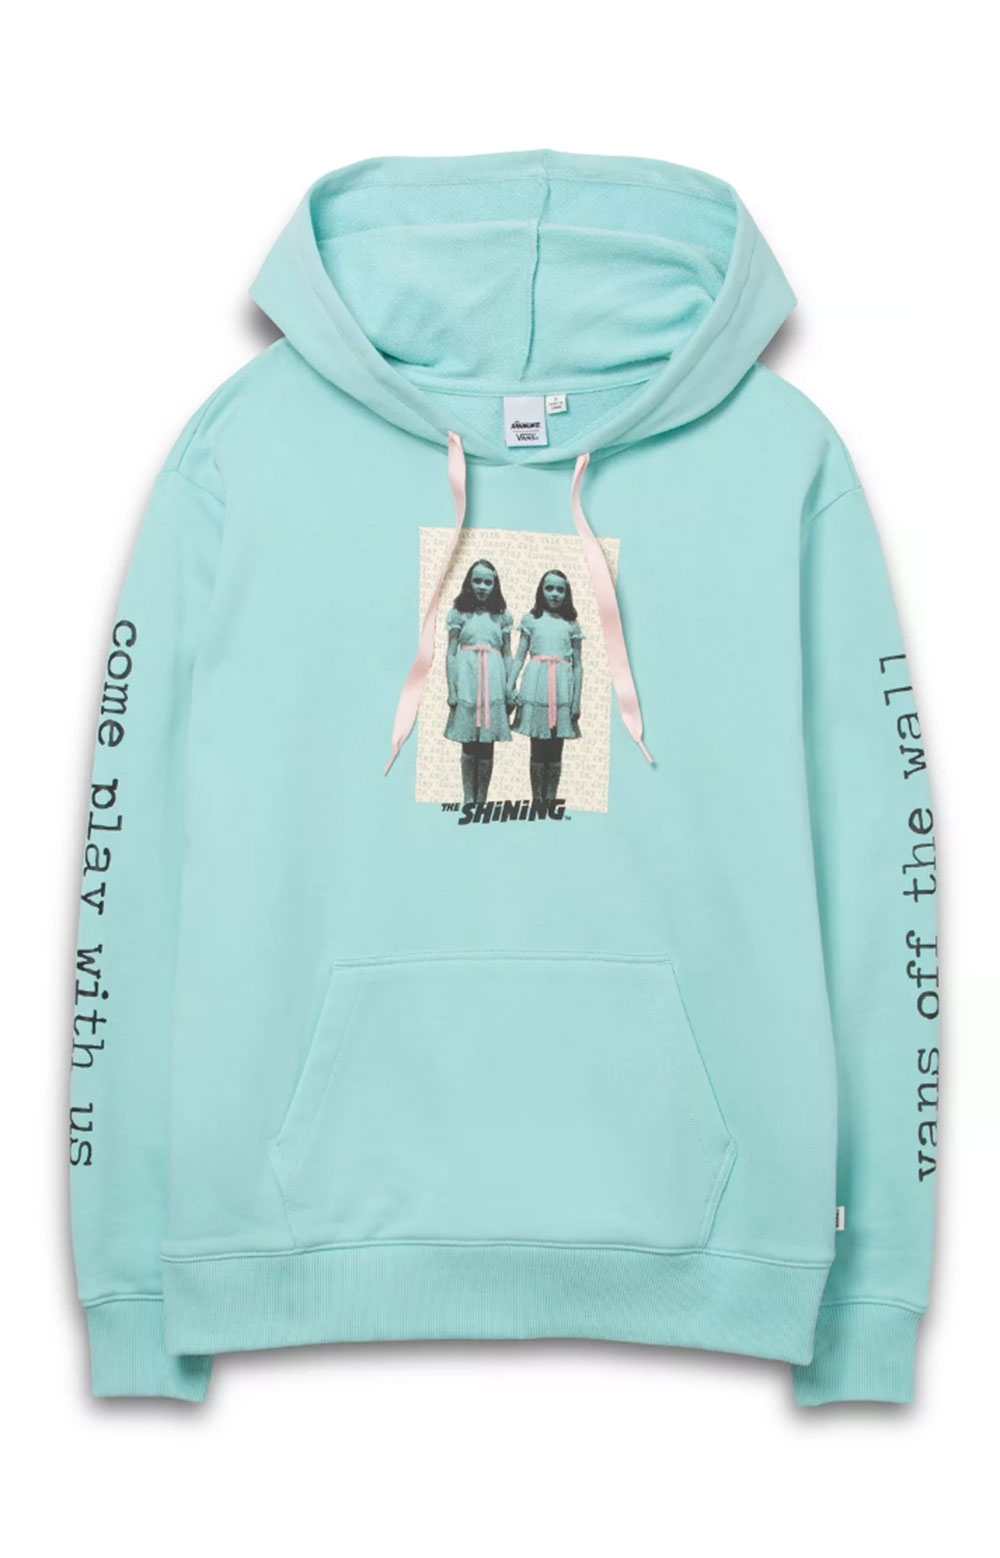 The Shining BFF Pullover Hoodie - Horror